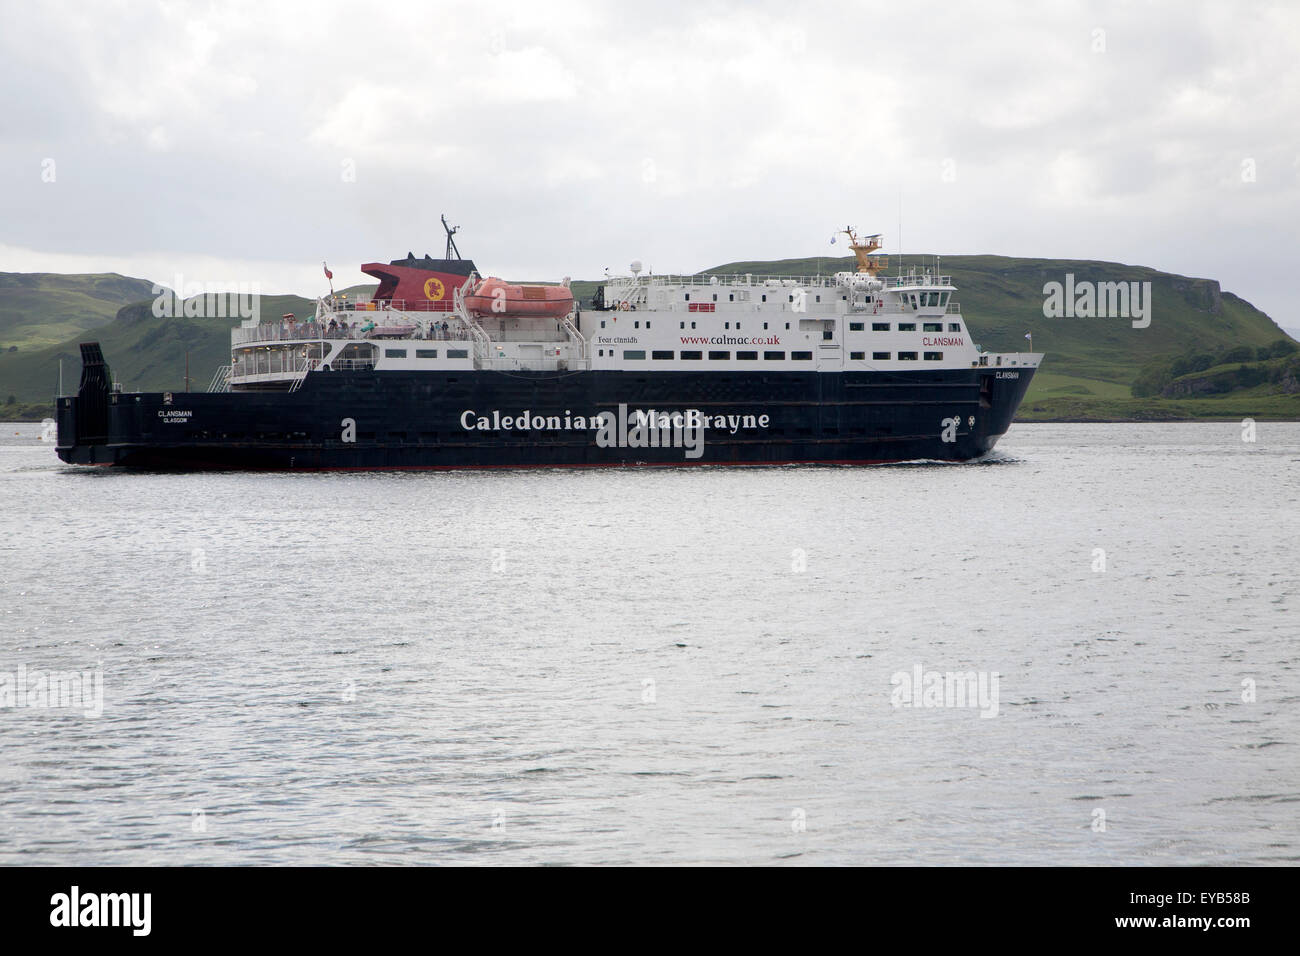 Caledonian MacBrayne ferry at Oban, Argyll and Bute, Scotland, UK Stock Photo